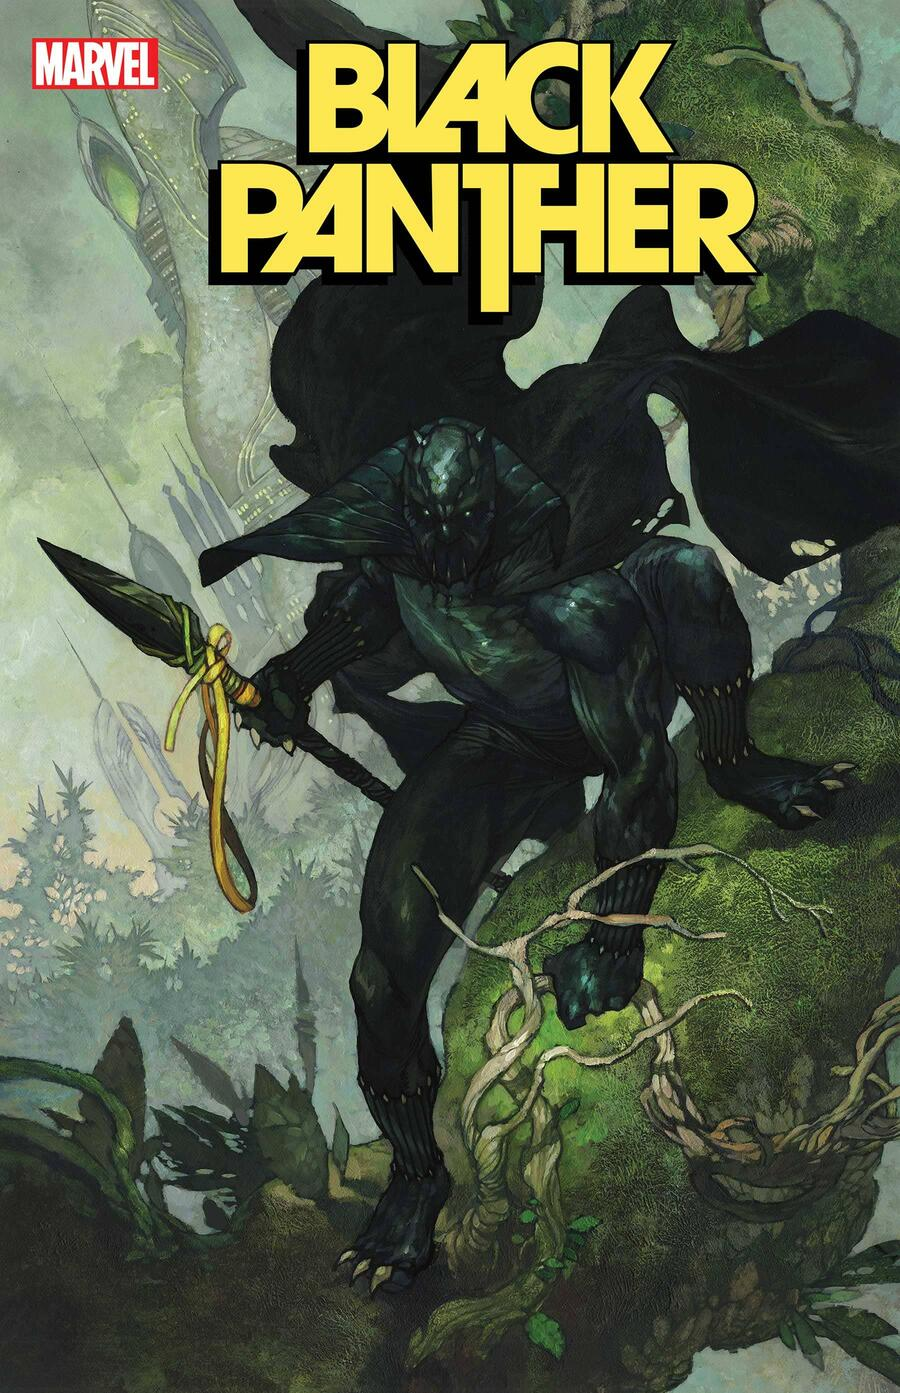 BLACK PANTHER #1 variant cover by Simone Bianchi